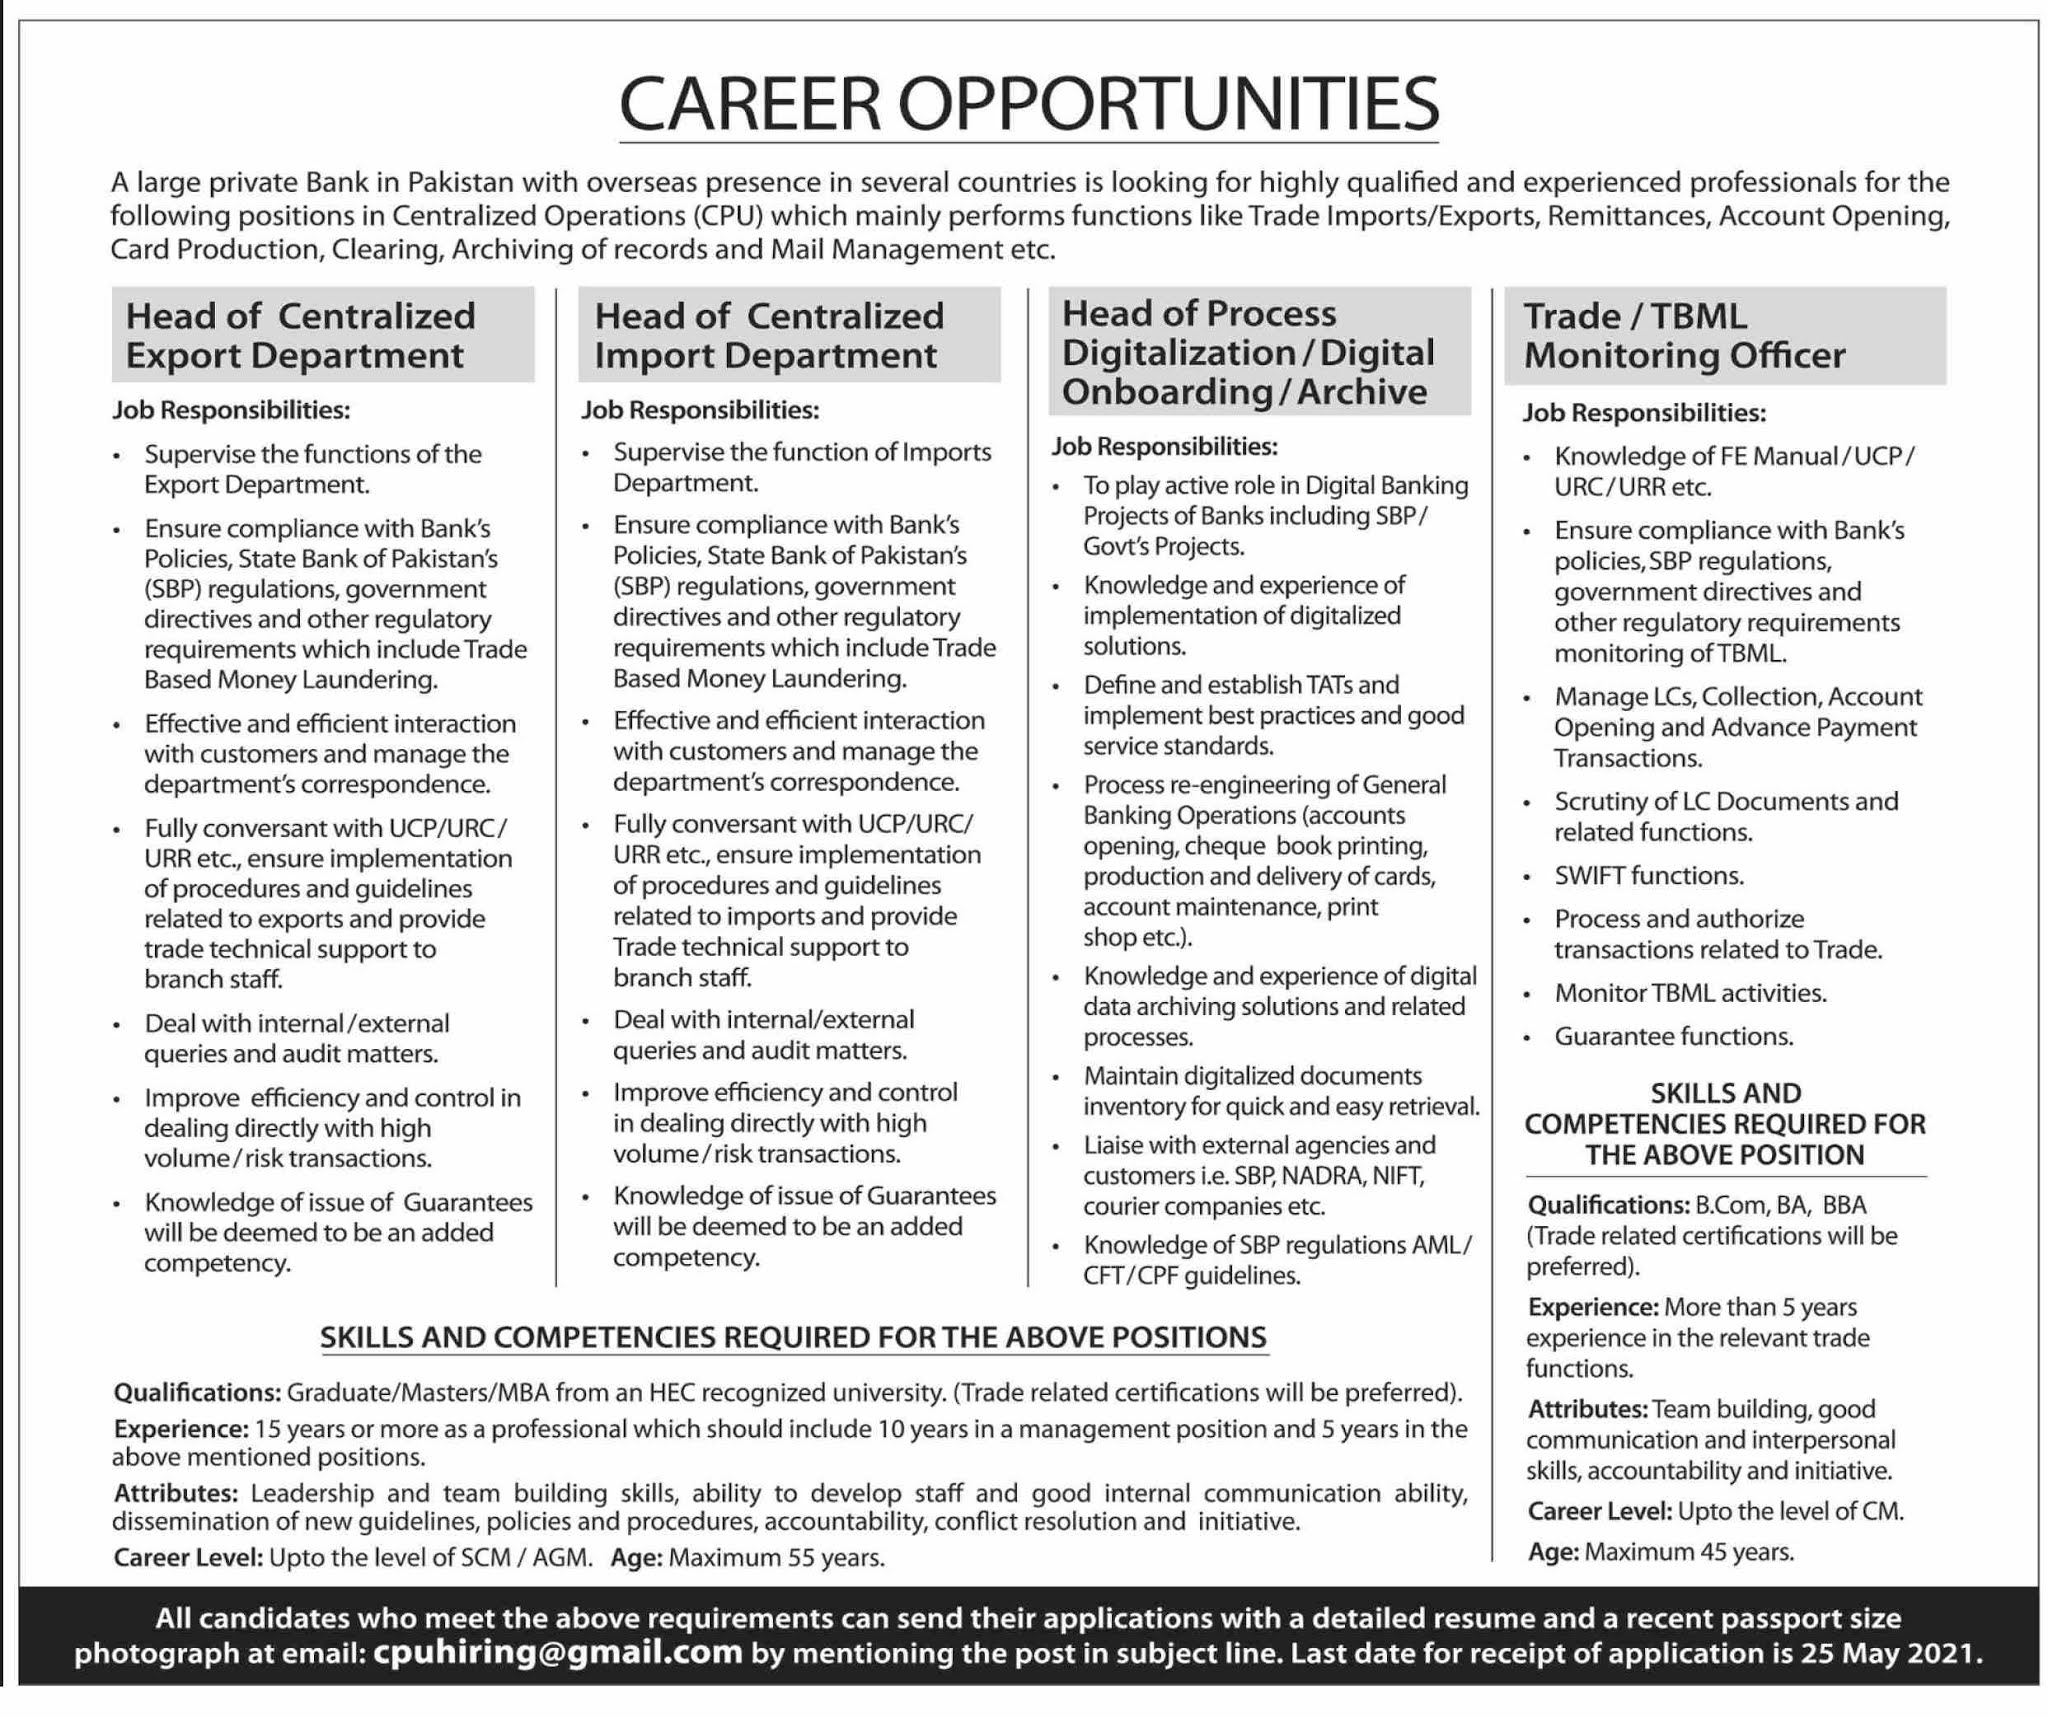 Large Private Bank in Pakistan Jobs 2021 in Pakistan